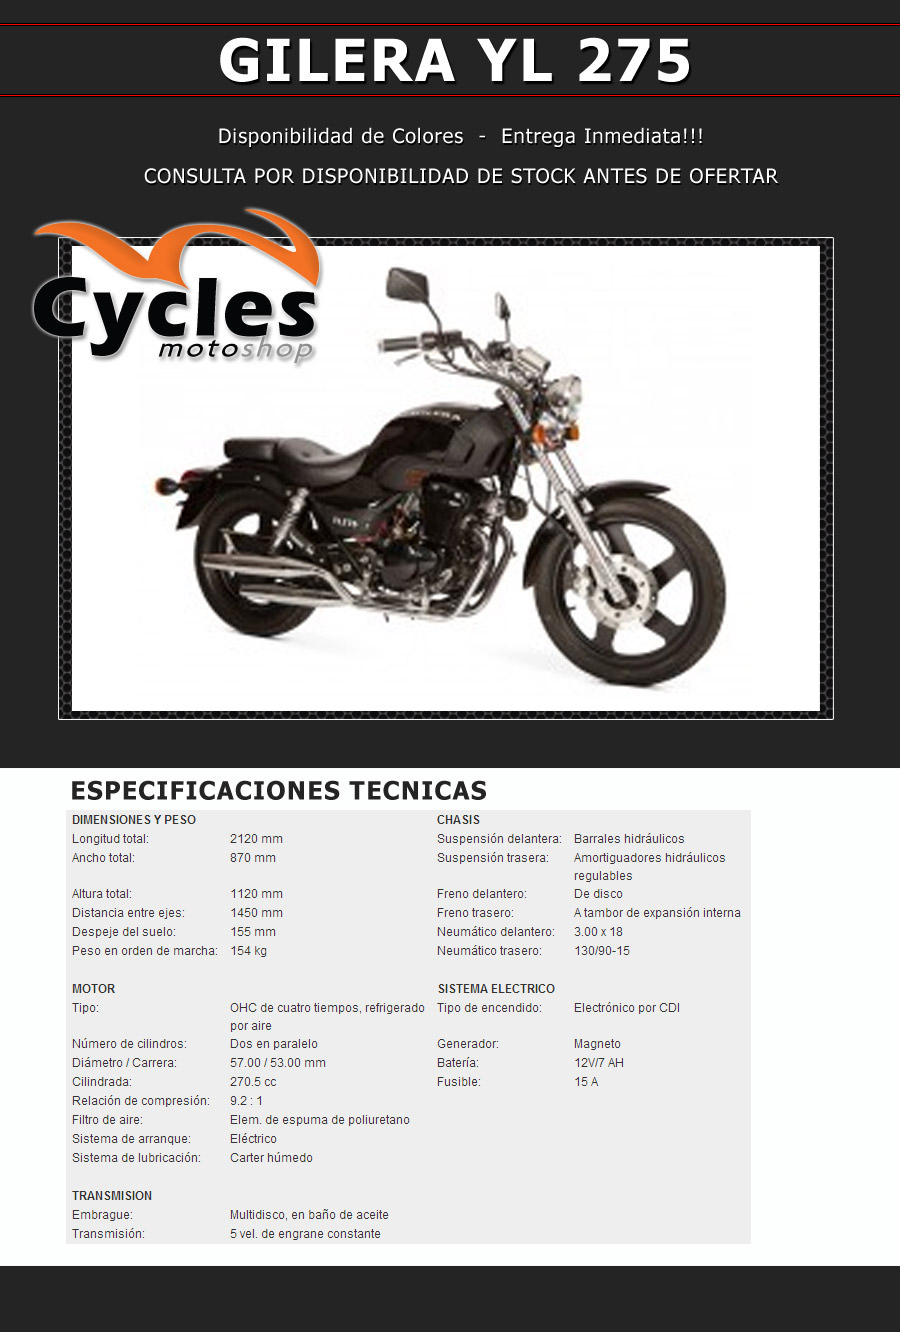 GILERA YL 275 Cycles Motoshop